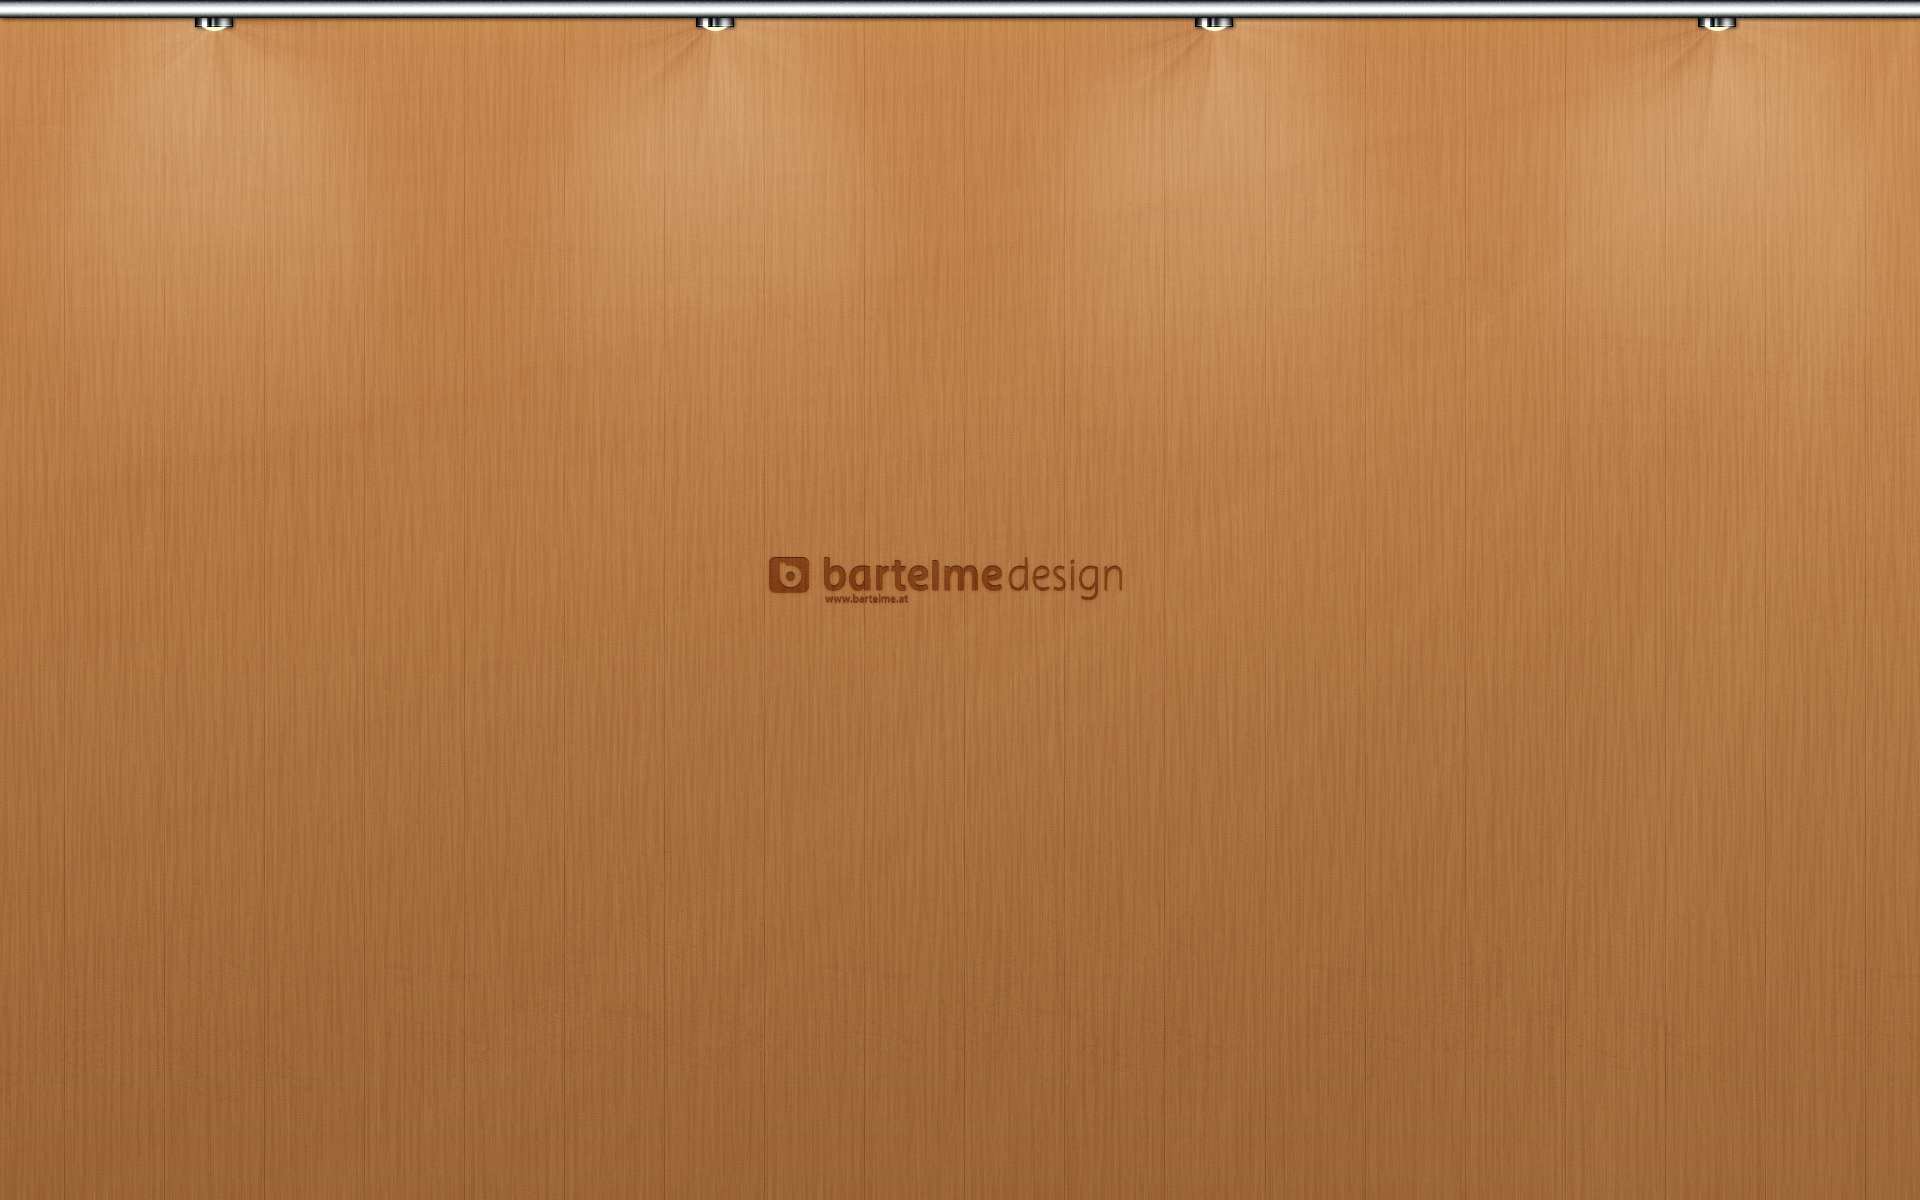 Btw if you're just interested in the official Bartelme Design wallpaper,